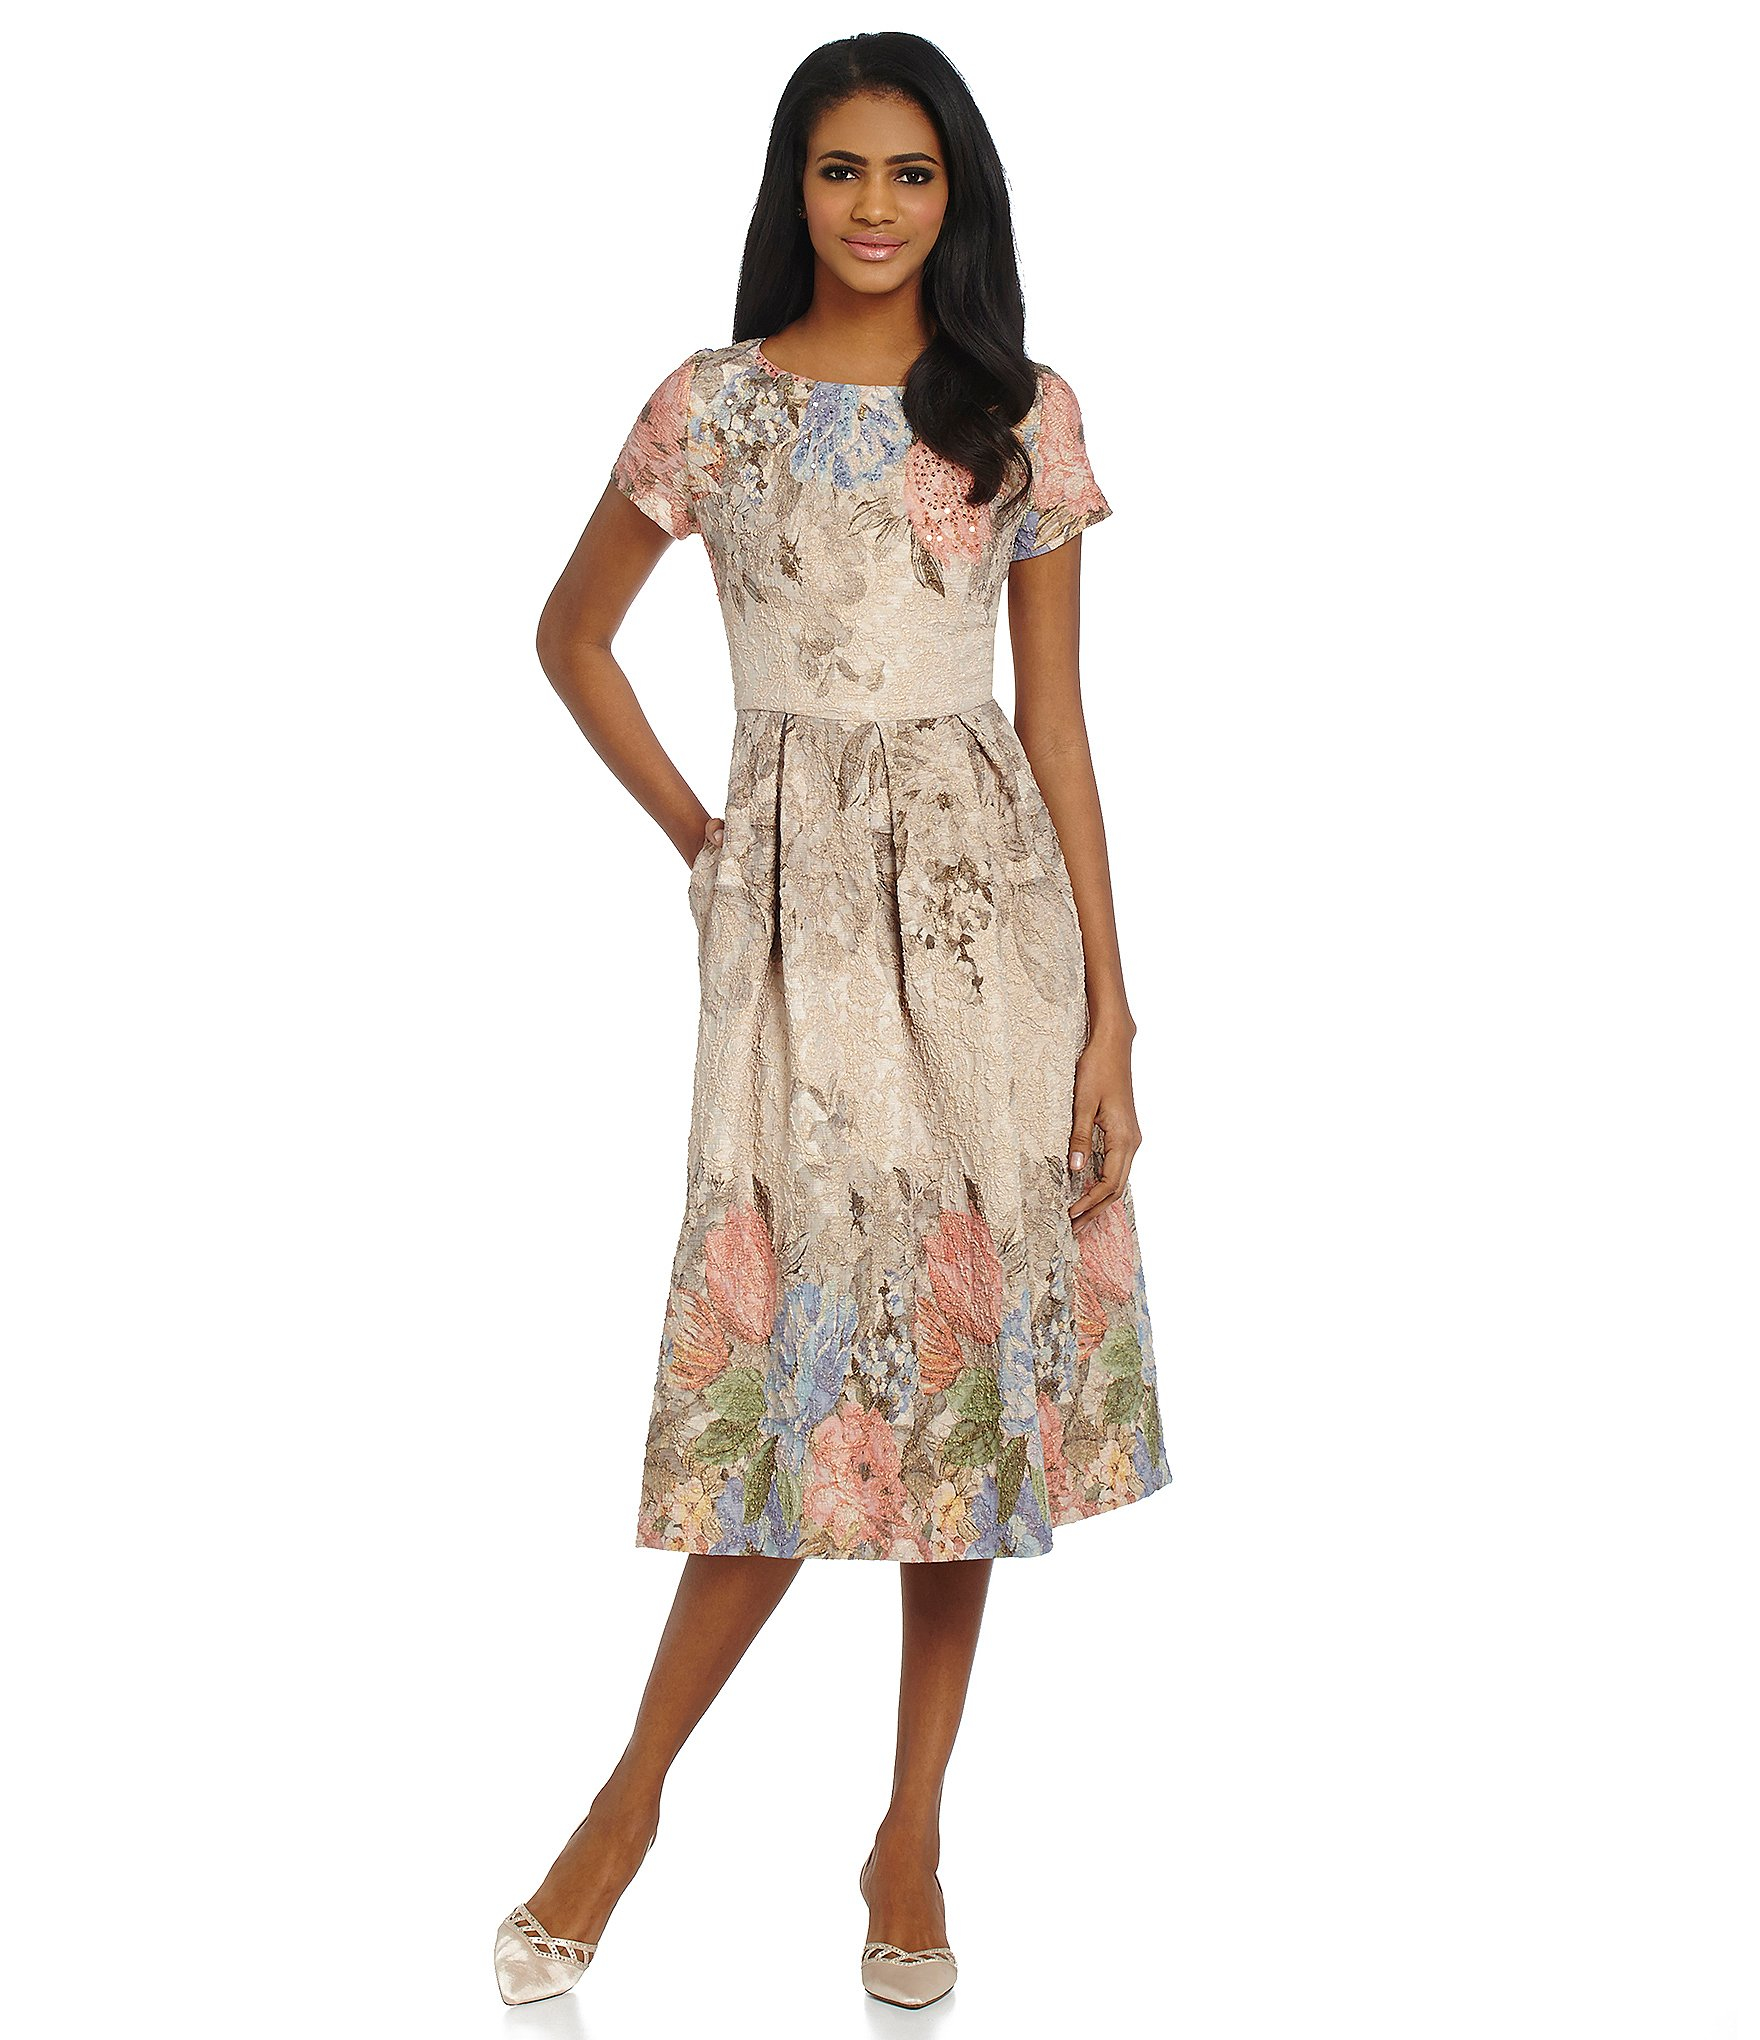 7f2385bddd6 Floral Beaded Dress With Short Sleeves